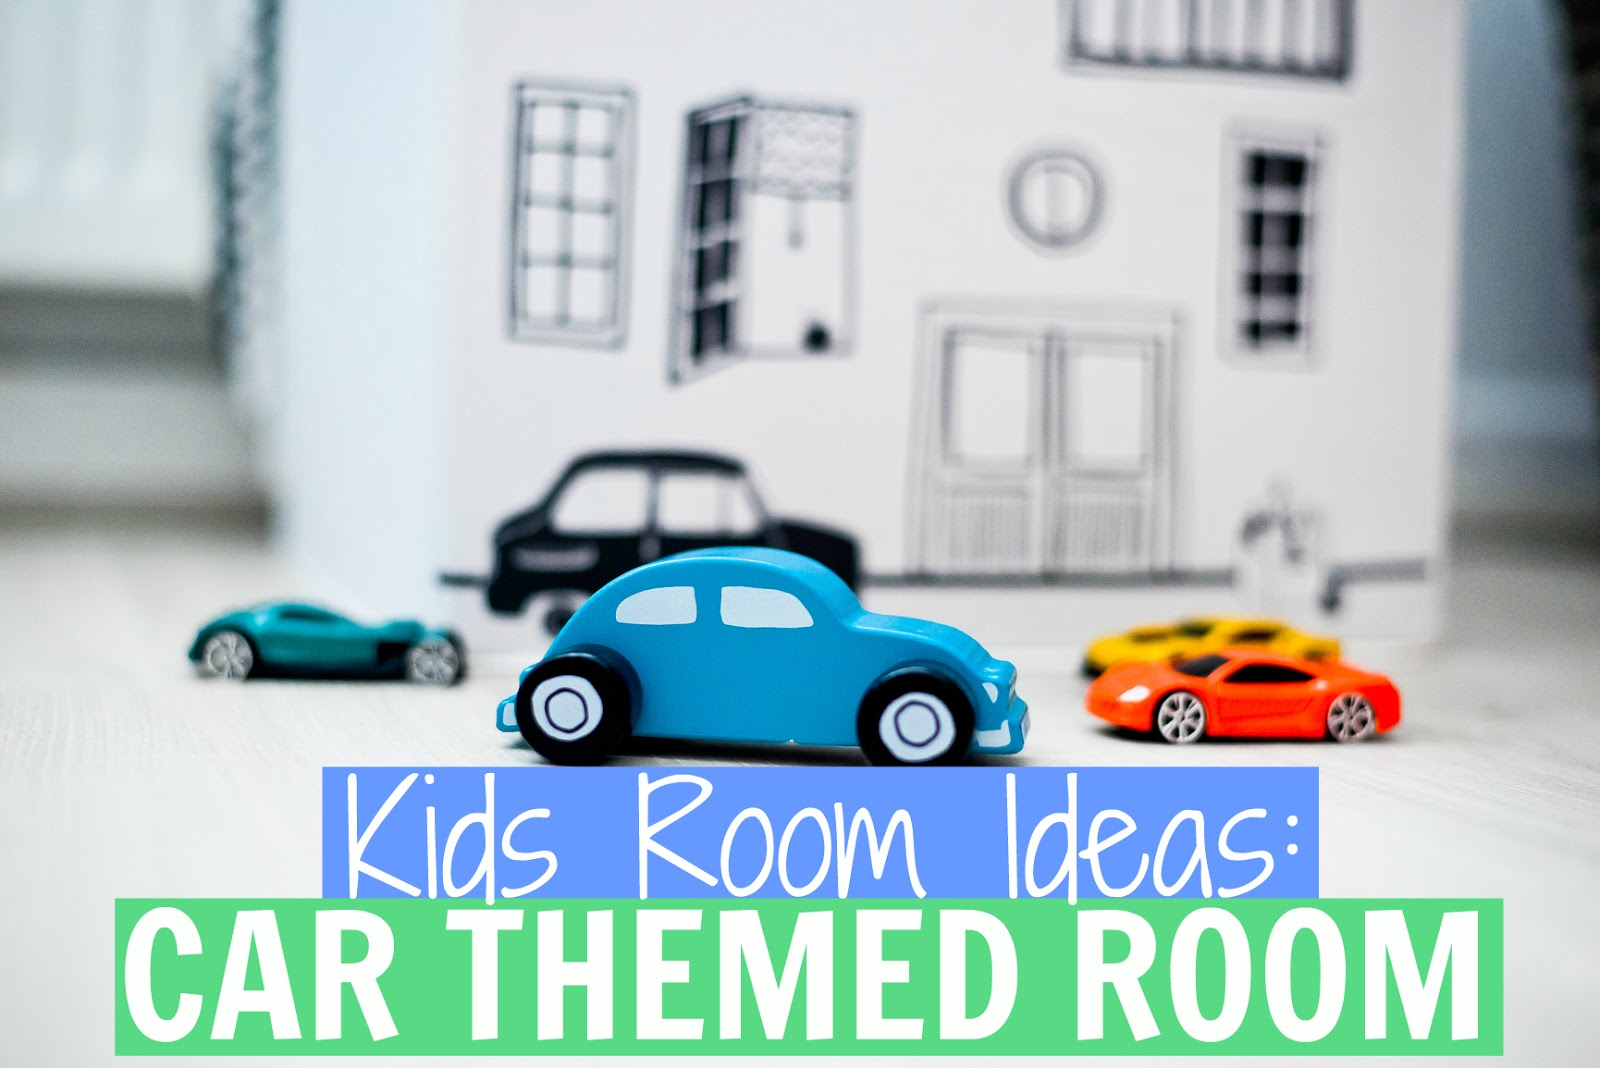 car bedroom car themed room kids car room - Boys Room Ideas Cars